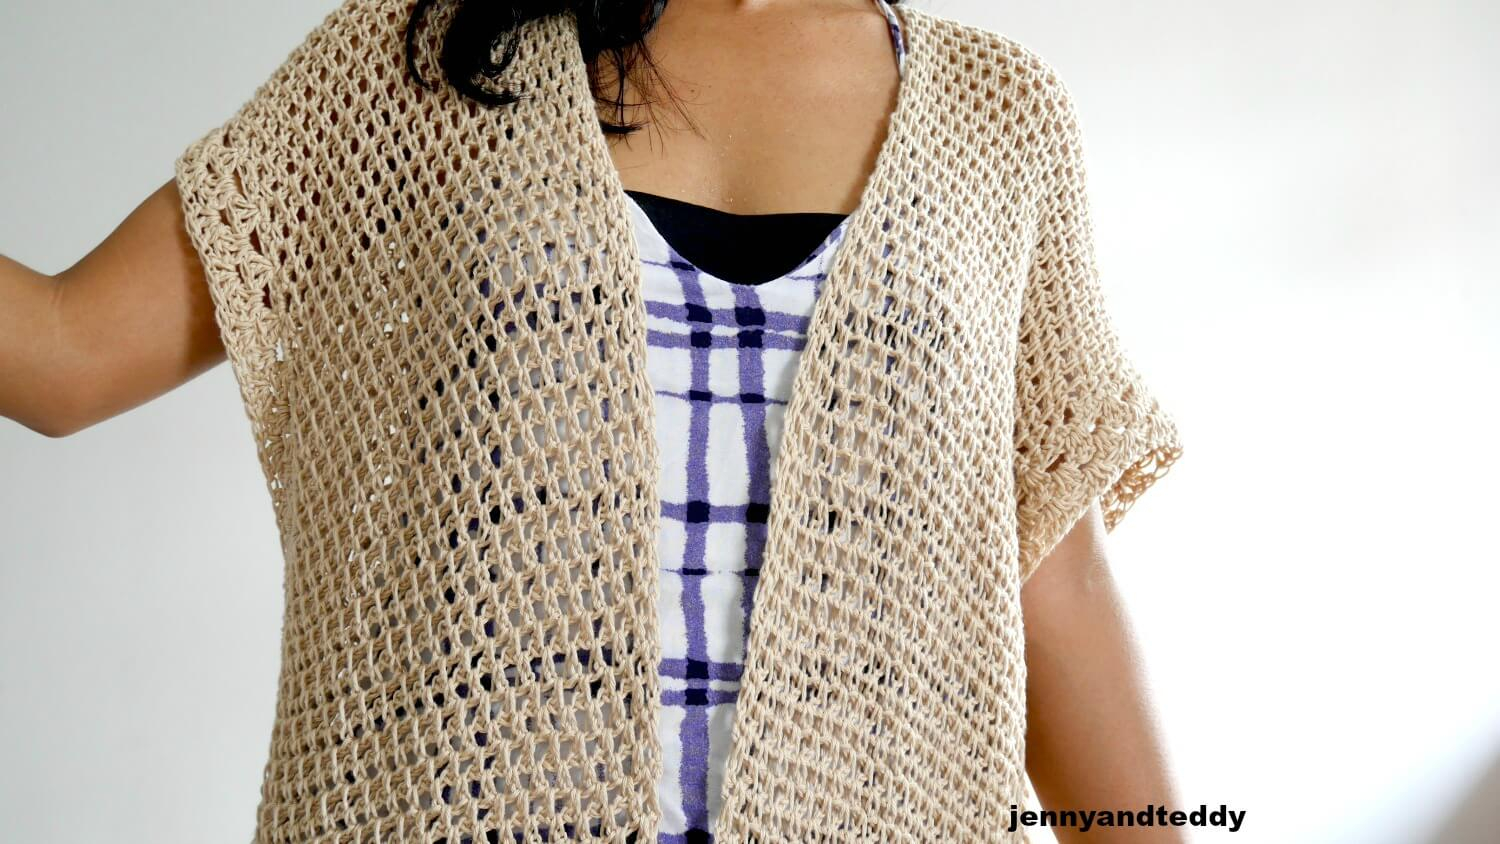 Kimono Sweater Knitting Pattern The Vacation Kimono Cardigan Free Crochet Pattern